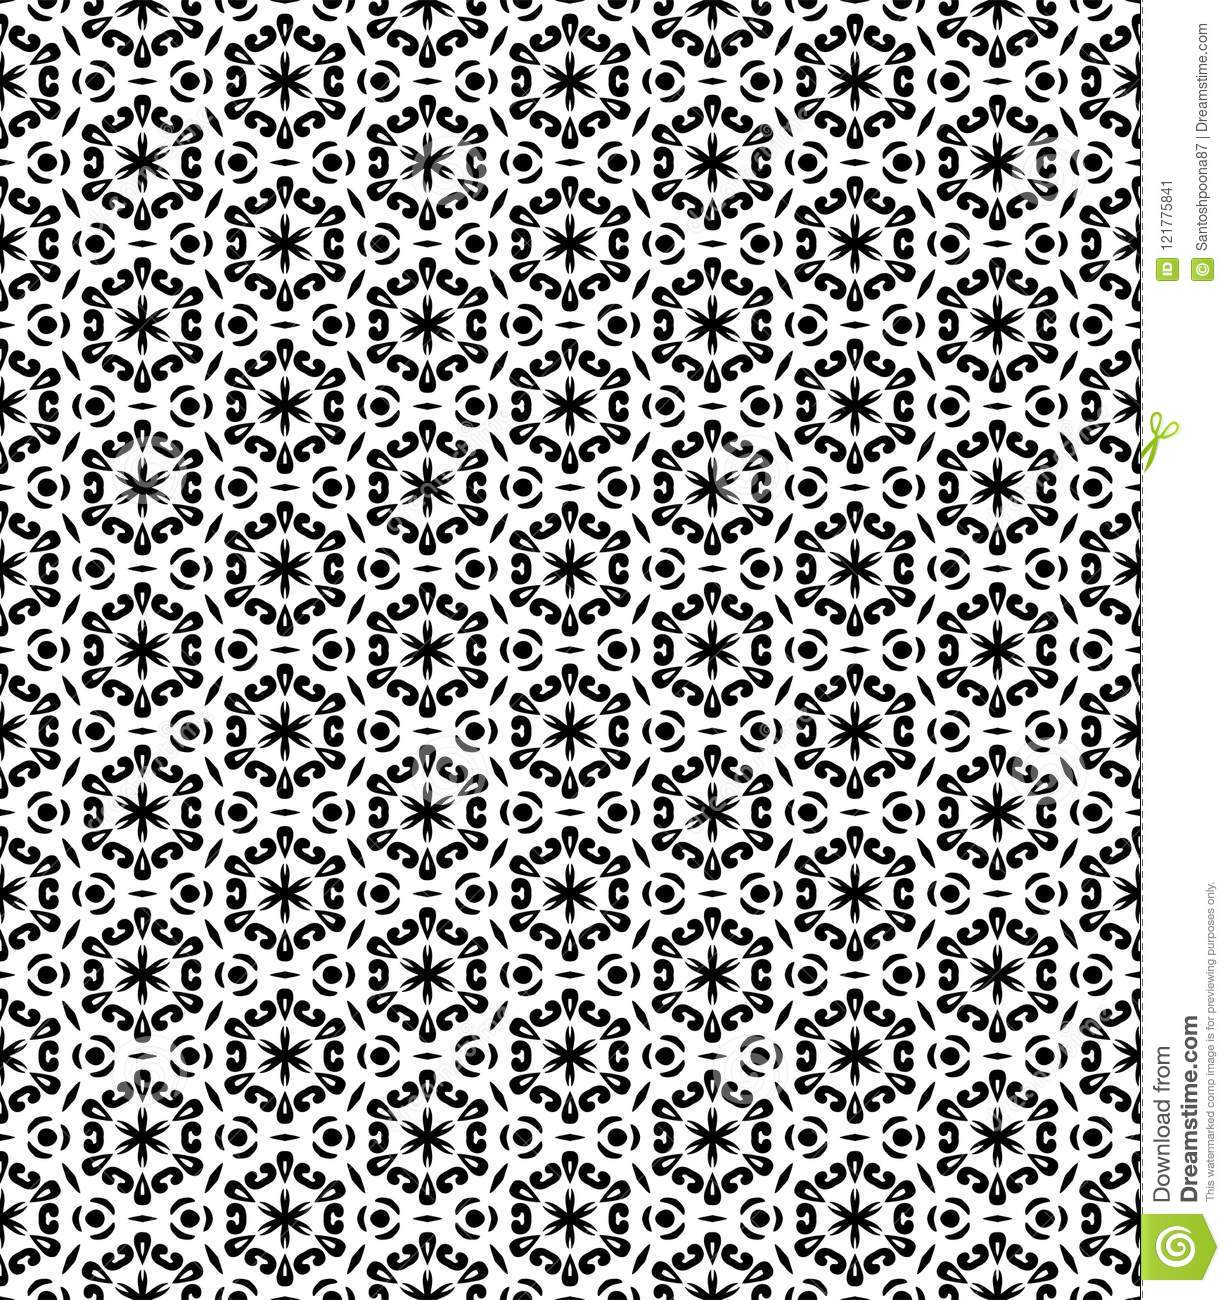 Seamsless Pattern Black And White Stock Vector - Illustration of ...